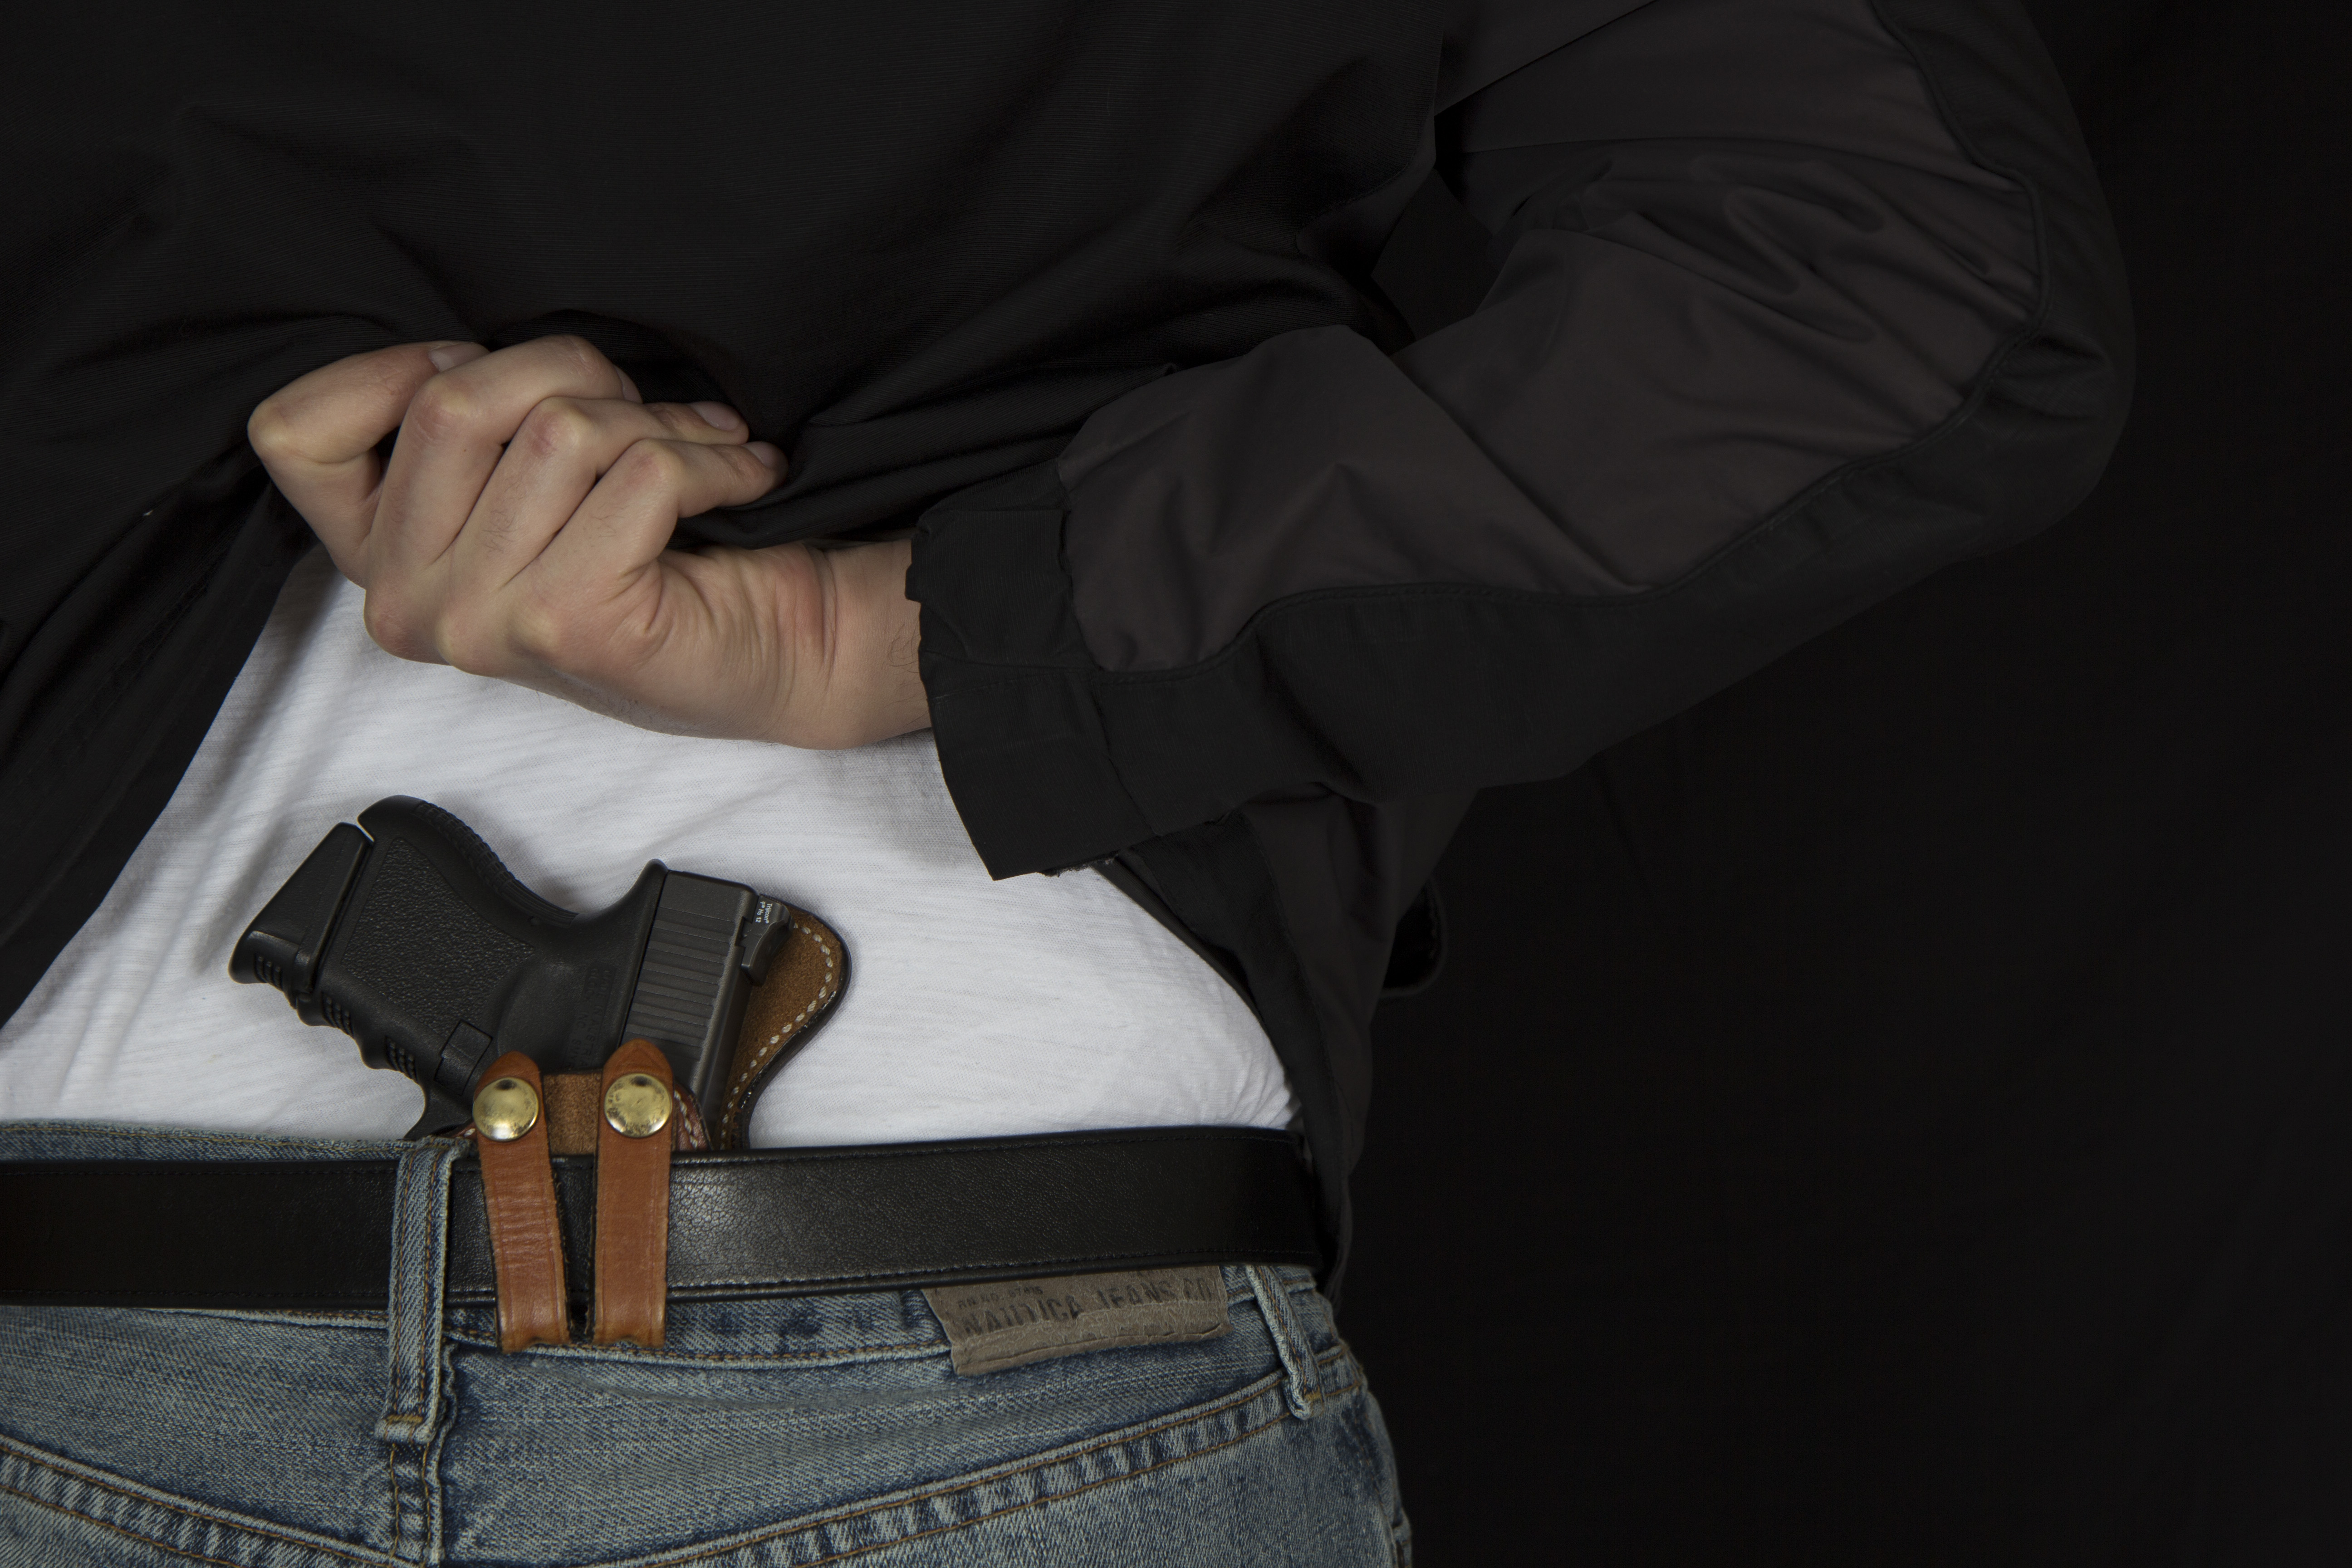 Idaho's new concealed carry law to go into effect